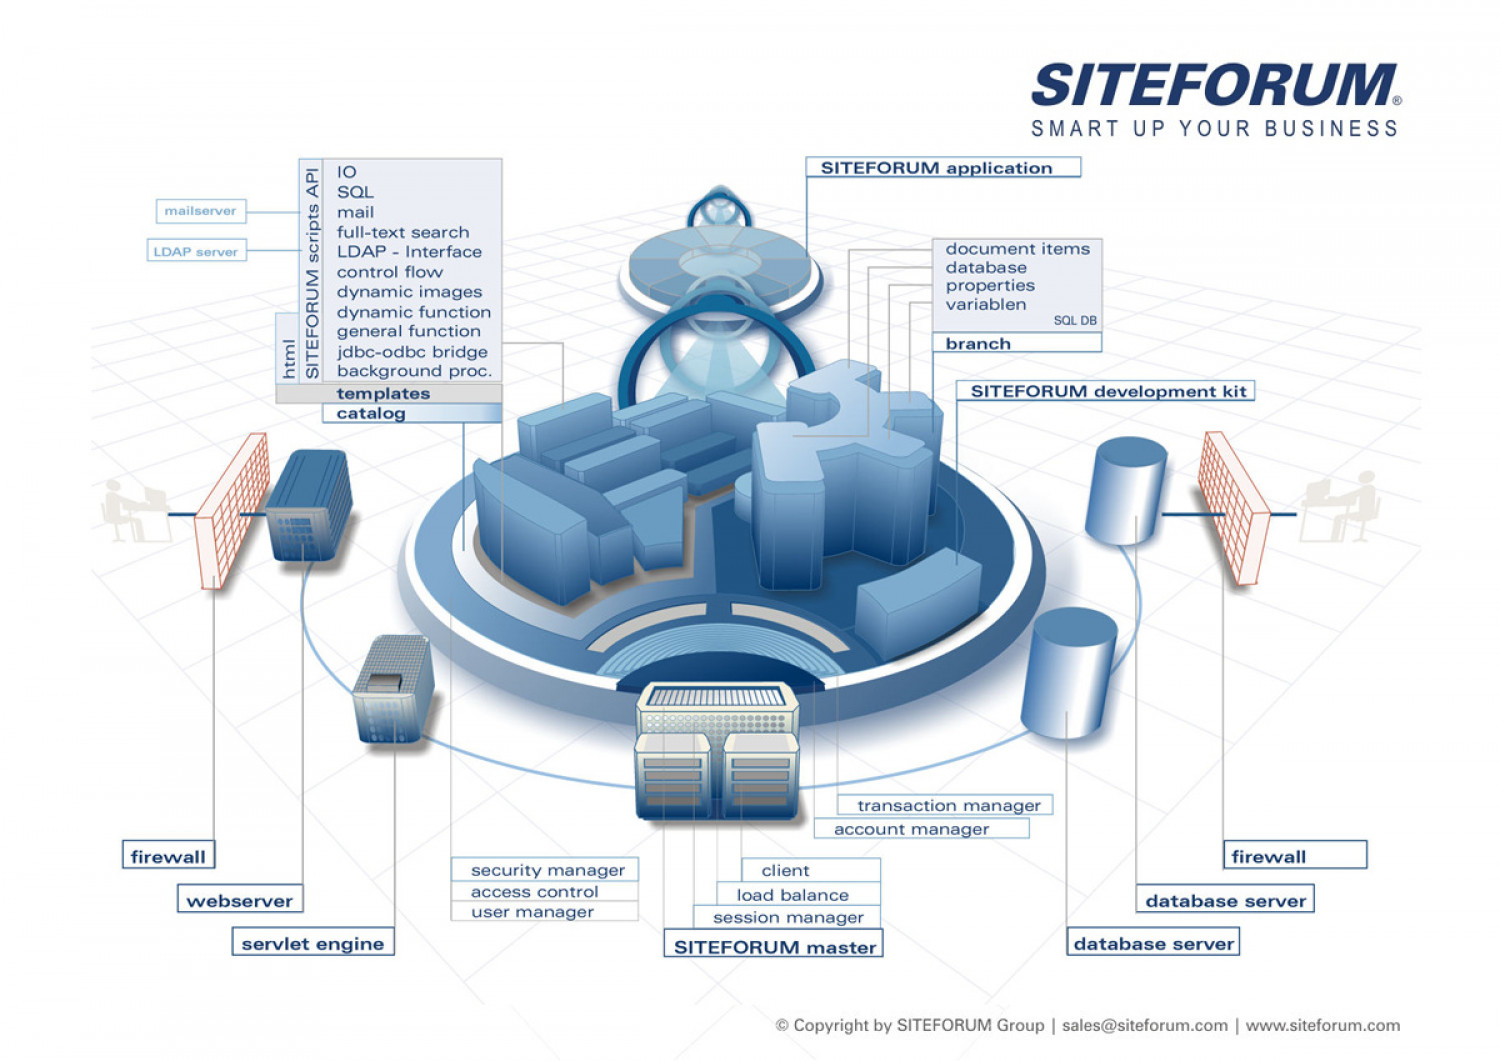 SITEFORUM Server and Software Structure Infographic